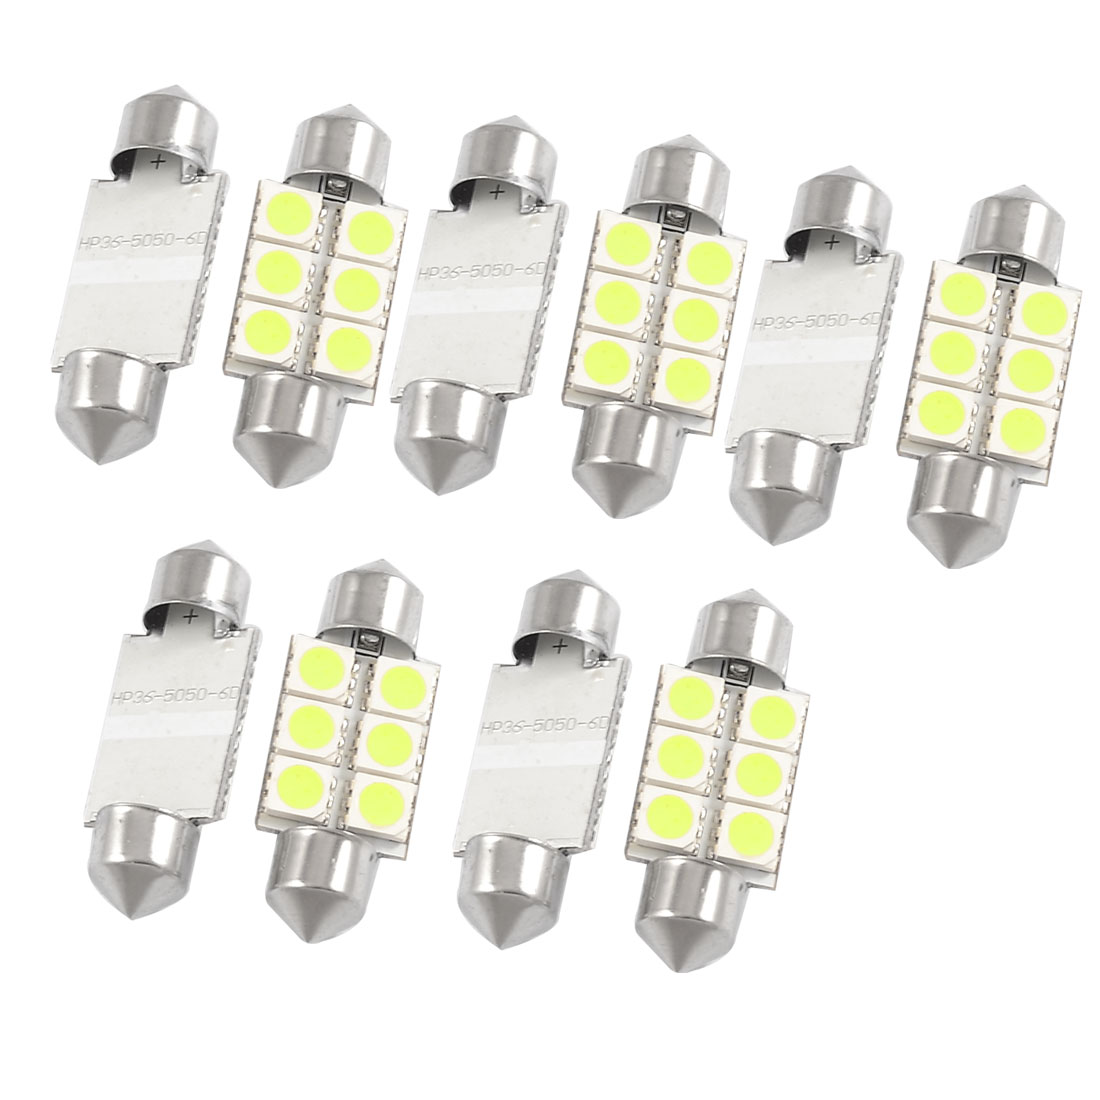 10 Pcs 36mm 5050 SMD 6 LED Festoon Dome Light White 6418 Bulbs